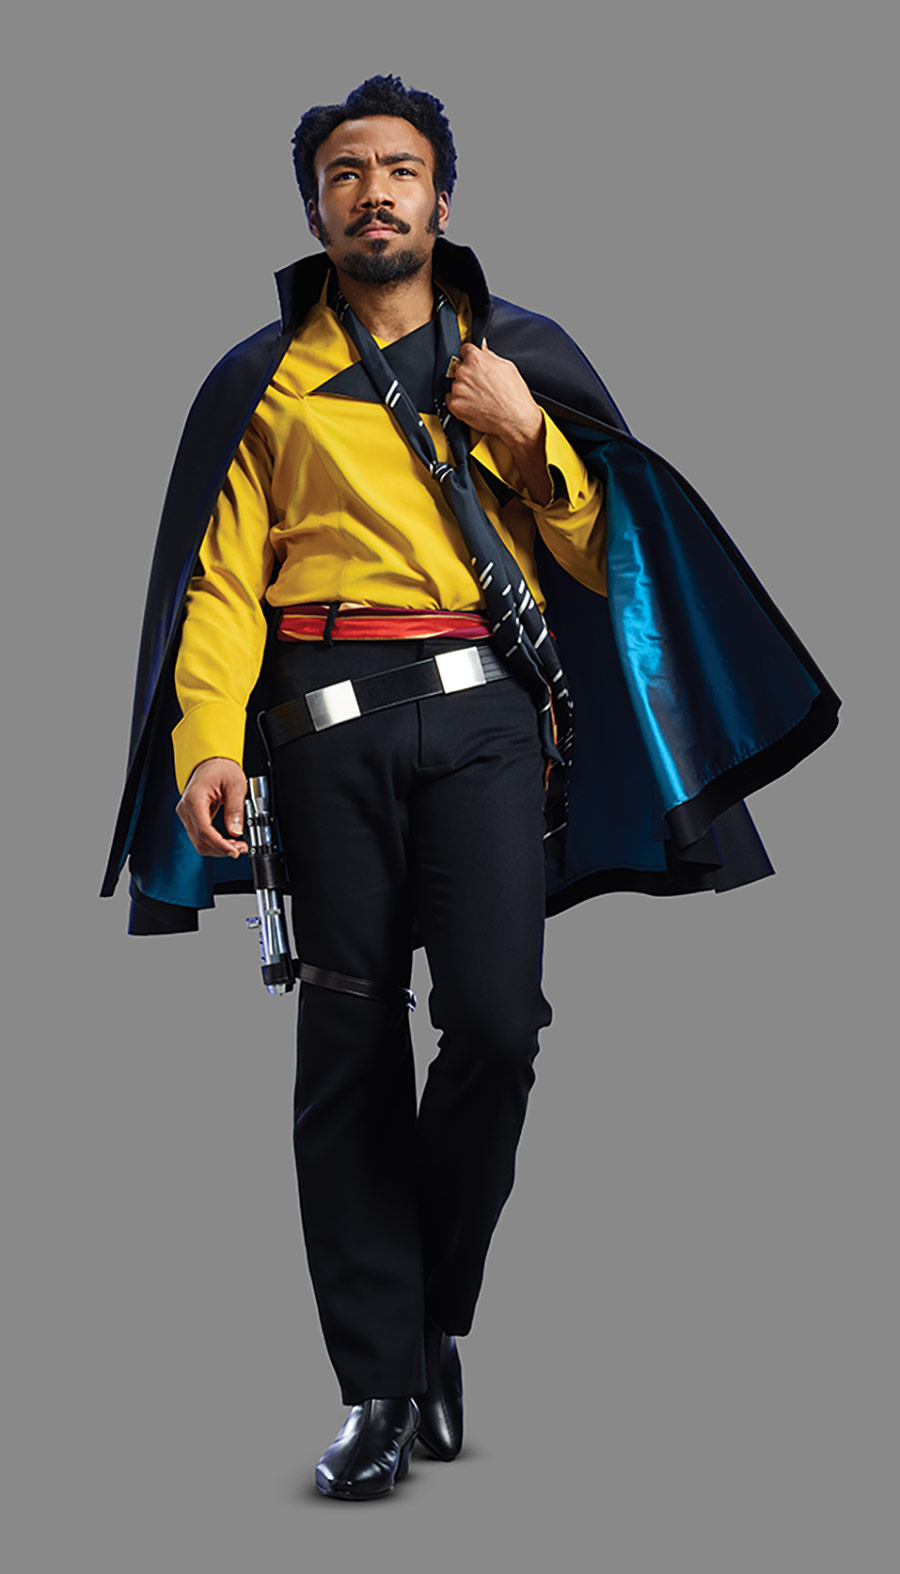 Solo: How Prince And The Clash Inspired The Look Of Lando And